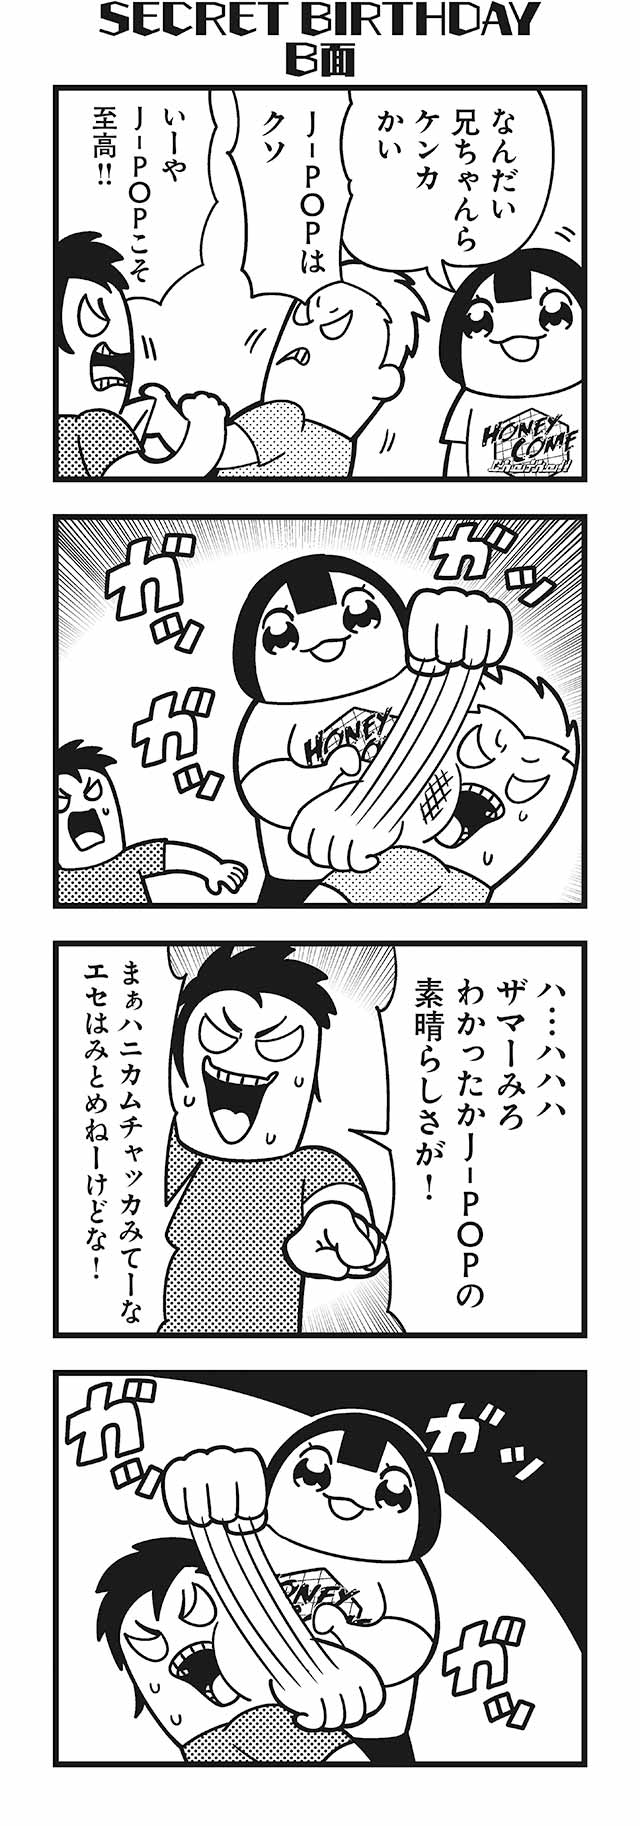 1girl 2boys 4koma :3 afterimage angry bangs bkub blunt_bangs bruise_on_face calimero_(bkub) comic emphasis_lines grabbing greyscale halftone highres honey_come_chatka!! monochrome multiple_boys no_pupils open_mouth pointing punching shirt short_hair shouting simple_background smug speech_bubble speed_lines sweatdrop talking translation_request two-tone_background wavy_mouth